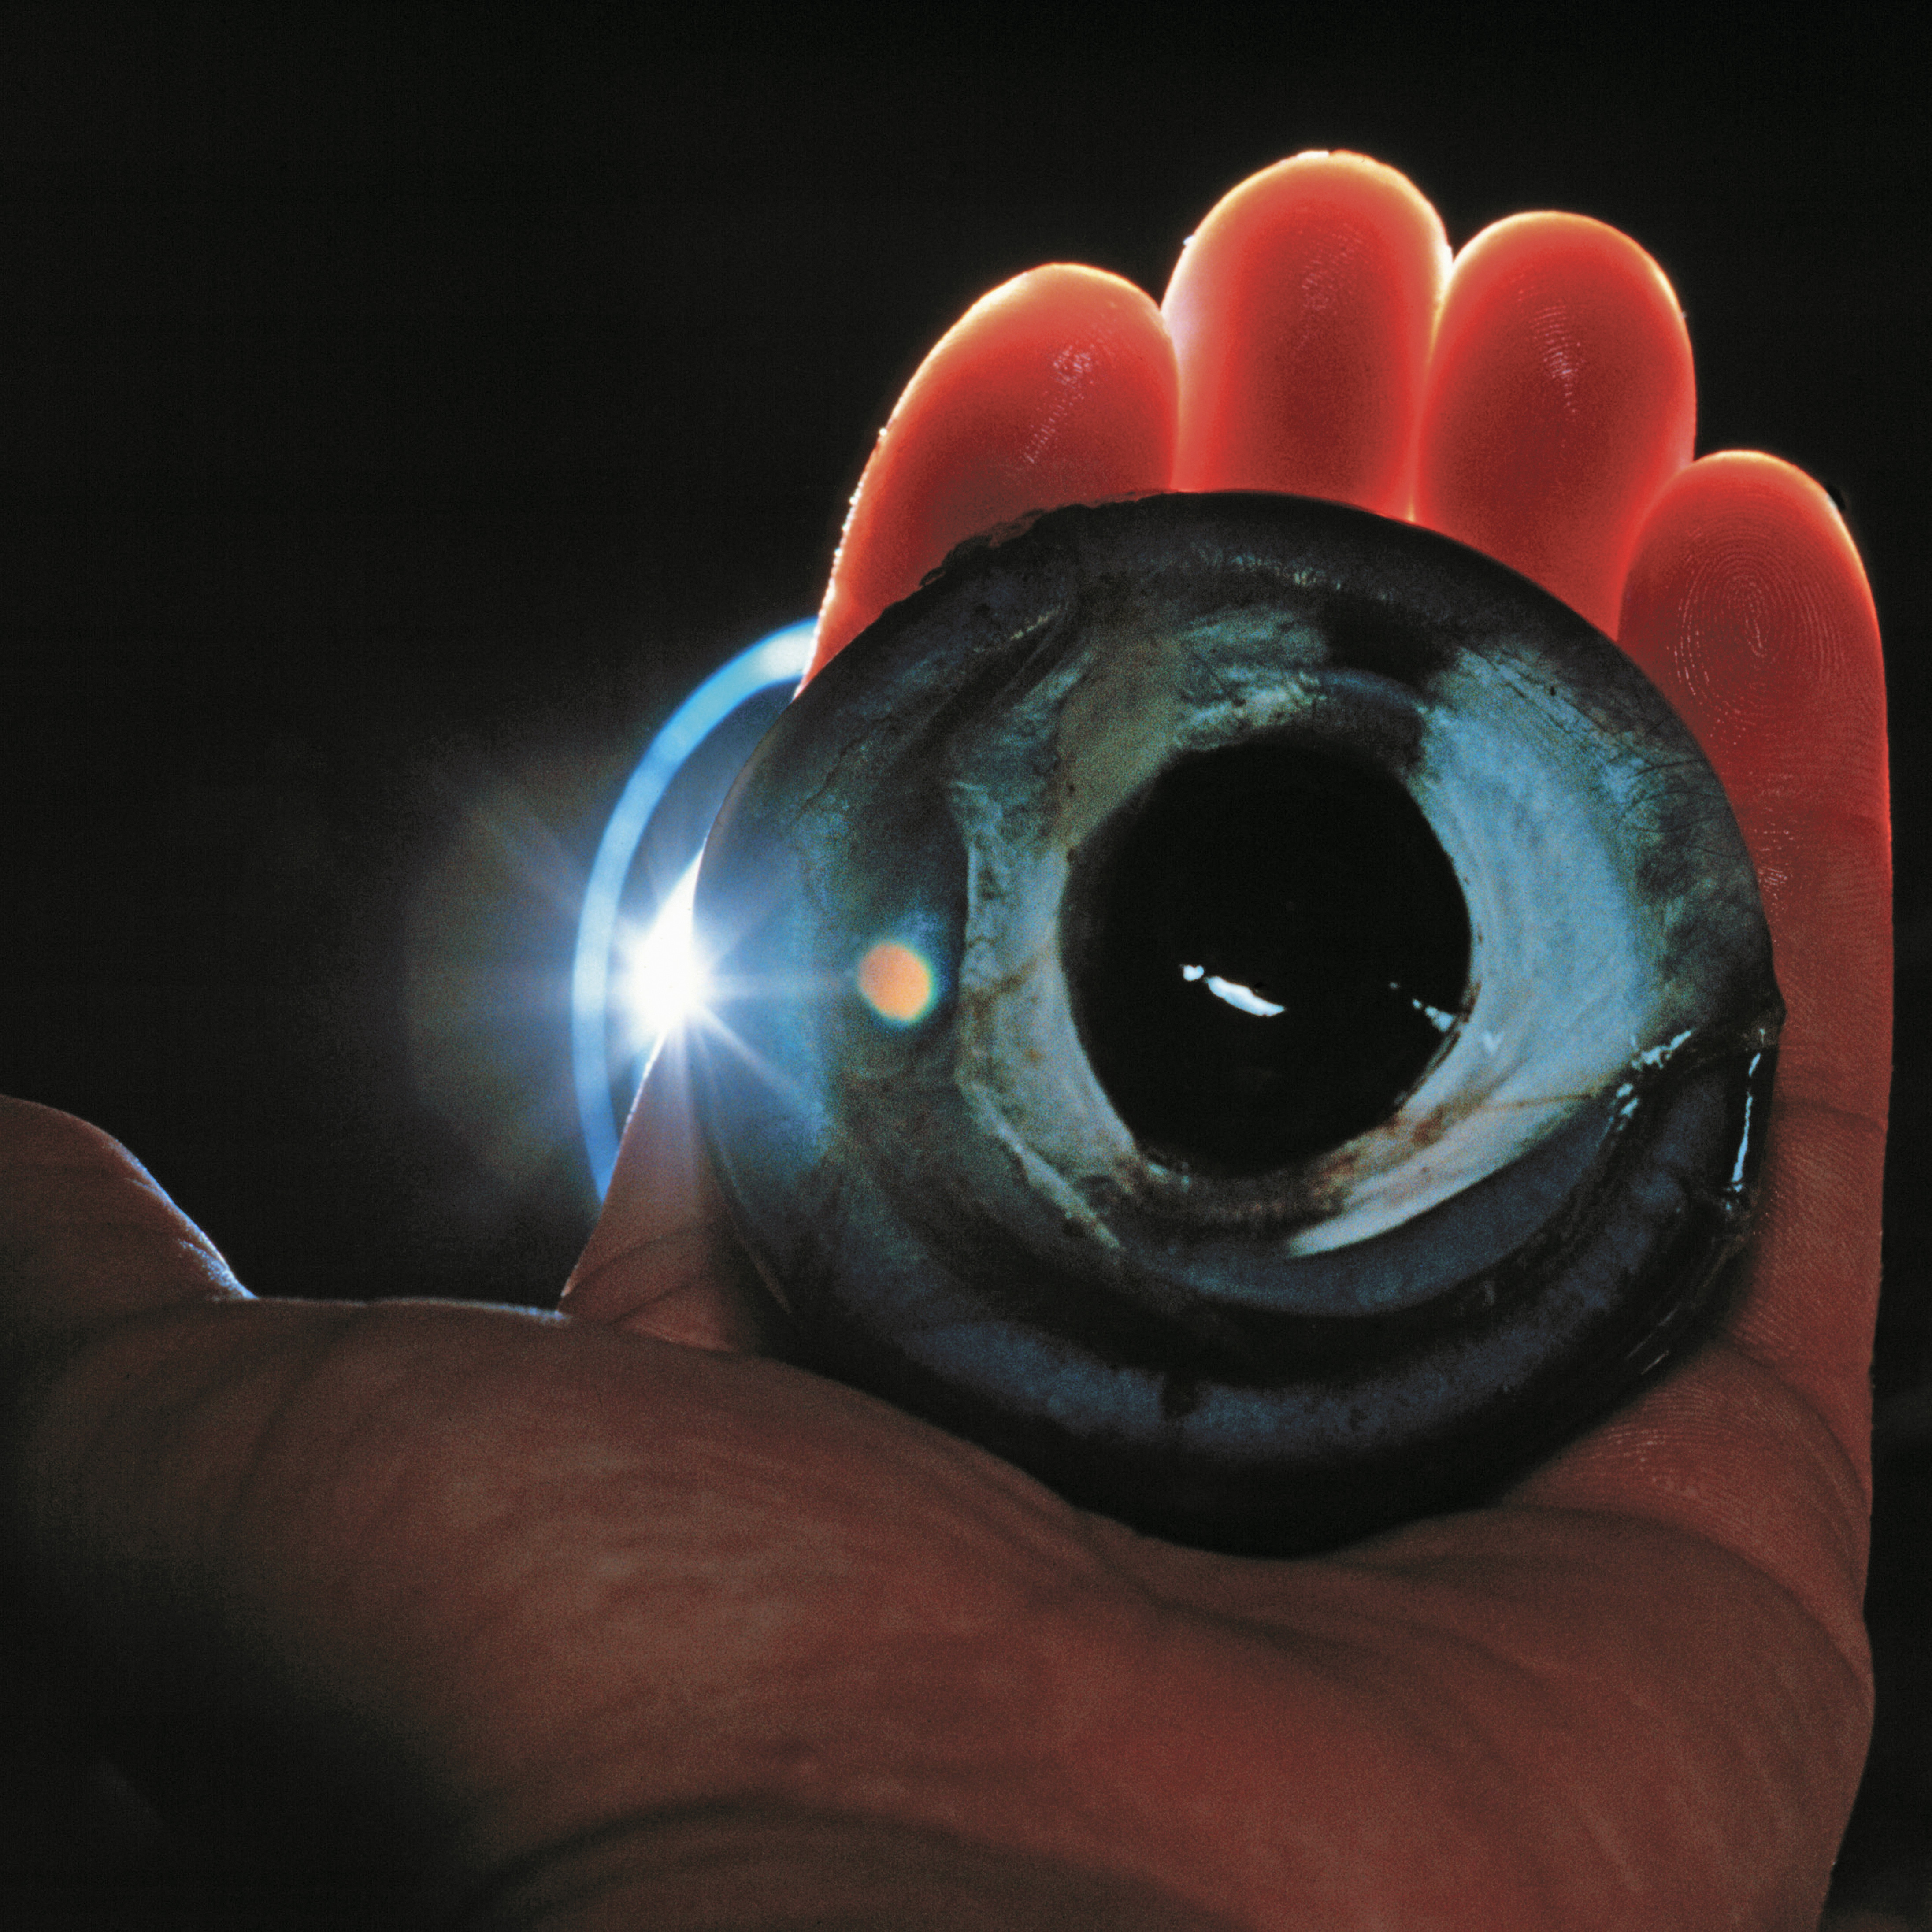 Now that's an eyeball